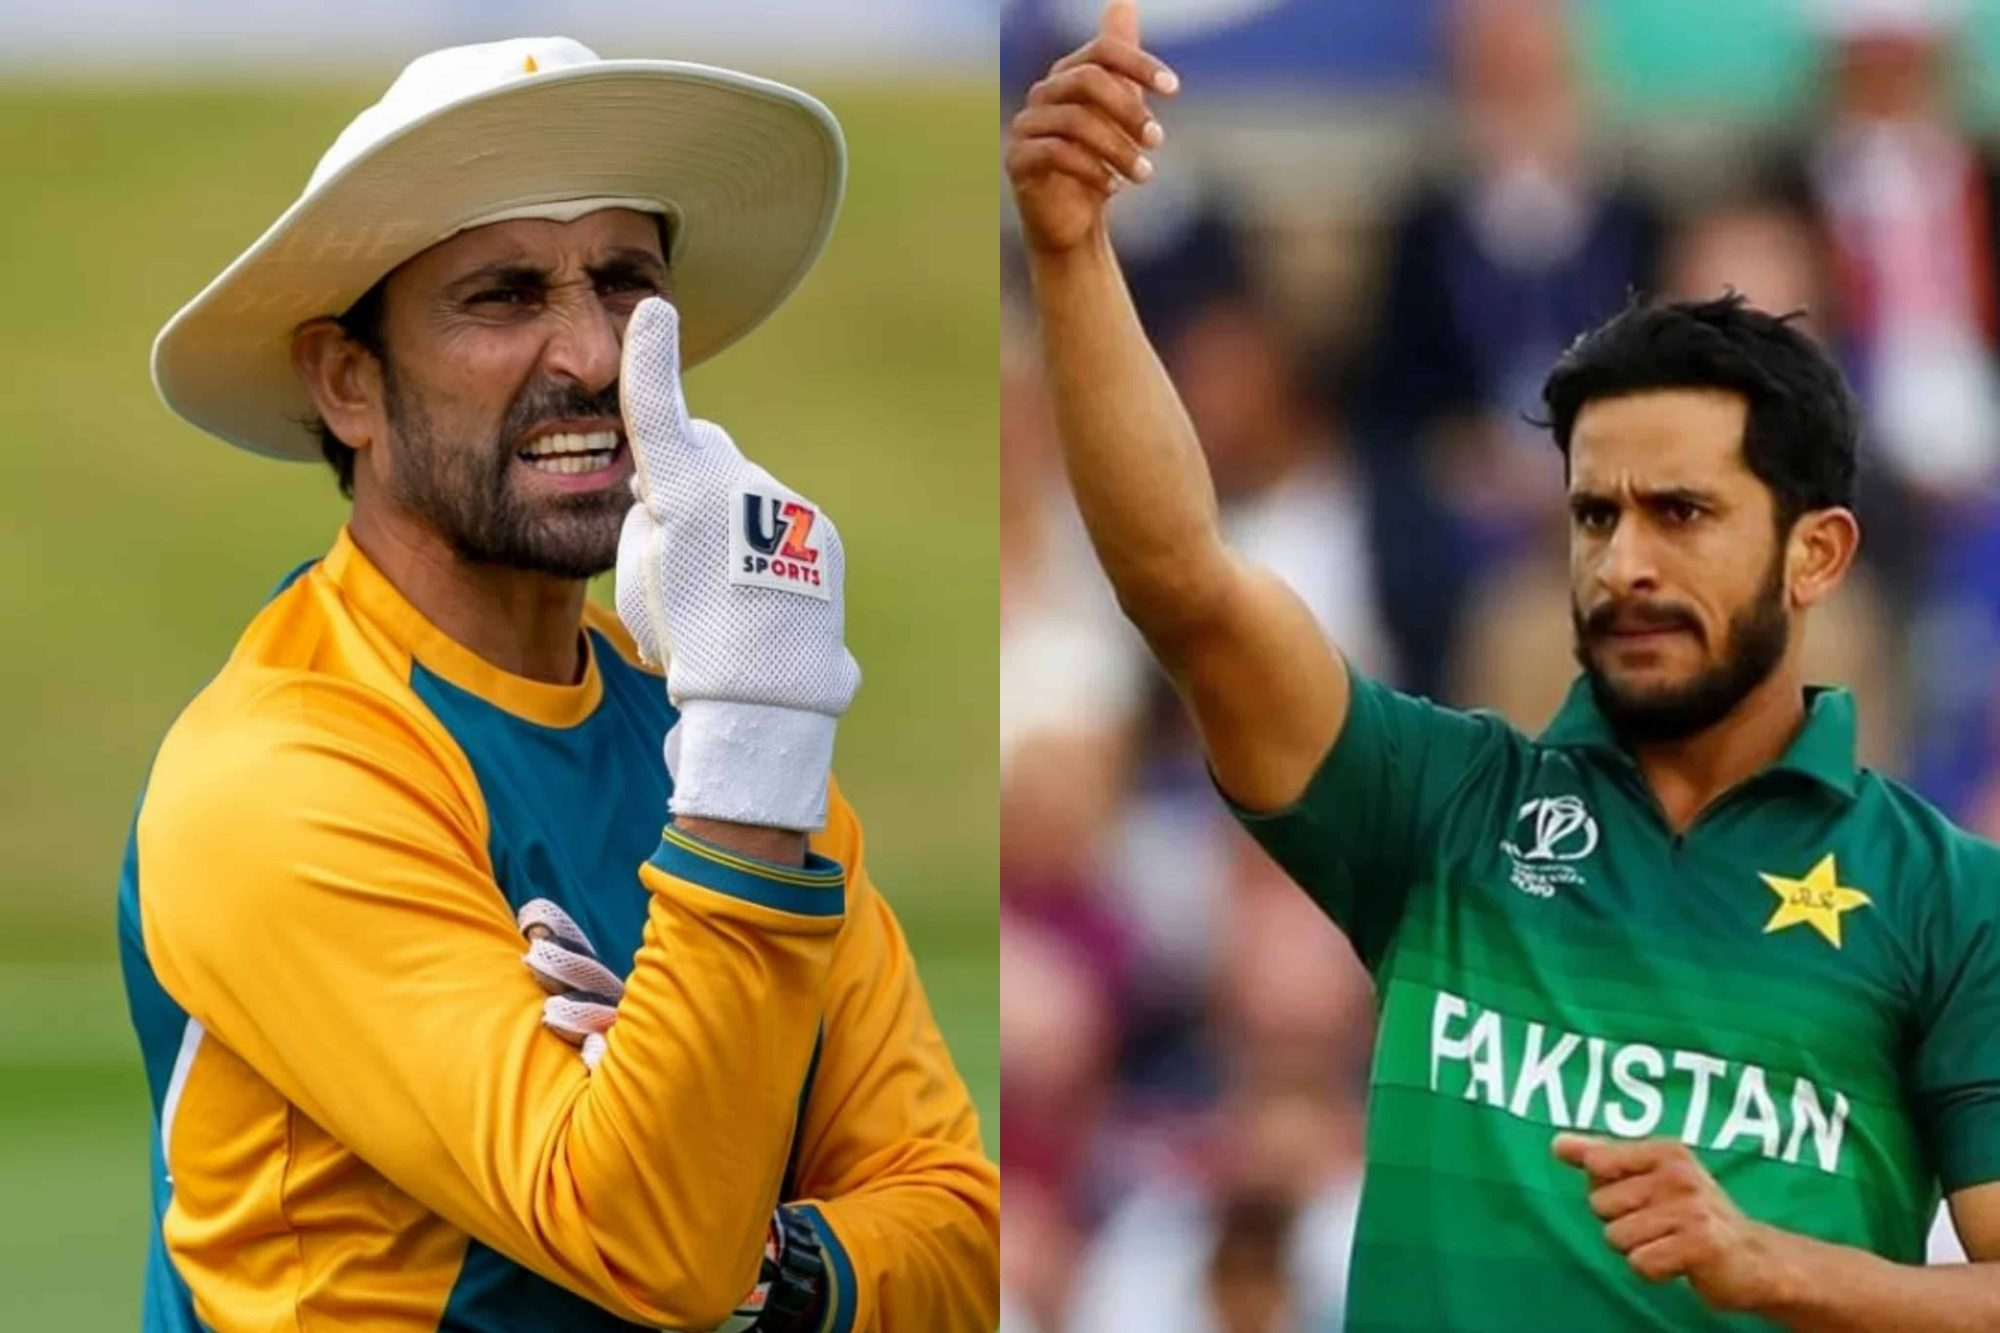 Younis Khan Opens Up On His Spat With Hasan Ali Over Ice-Bath Controversy